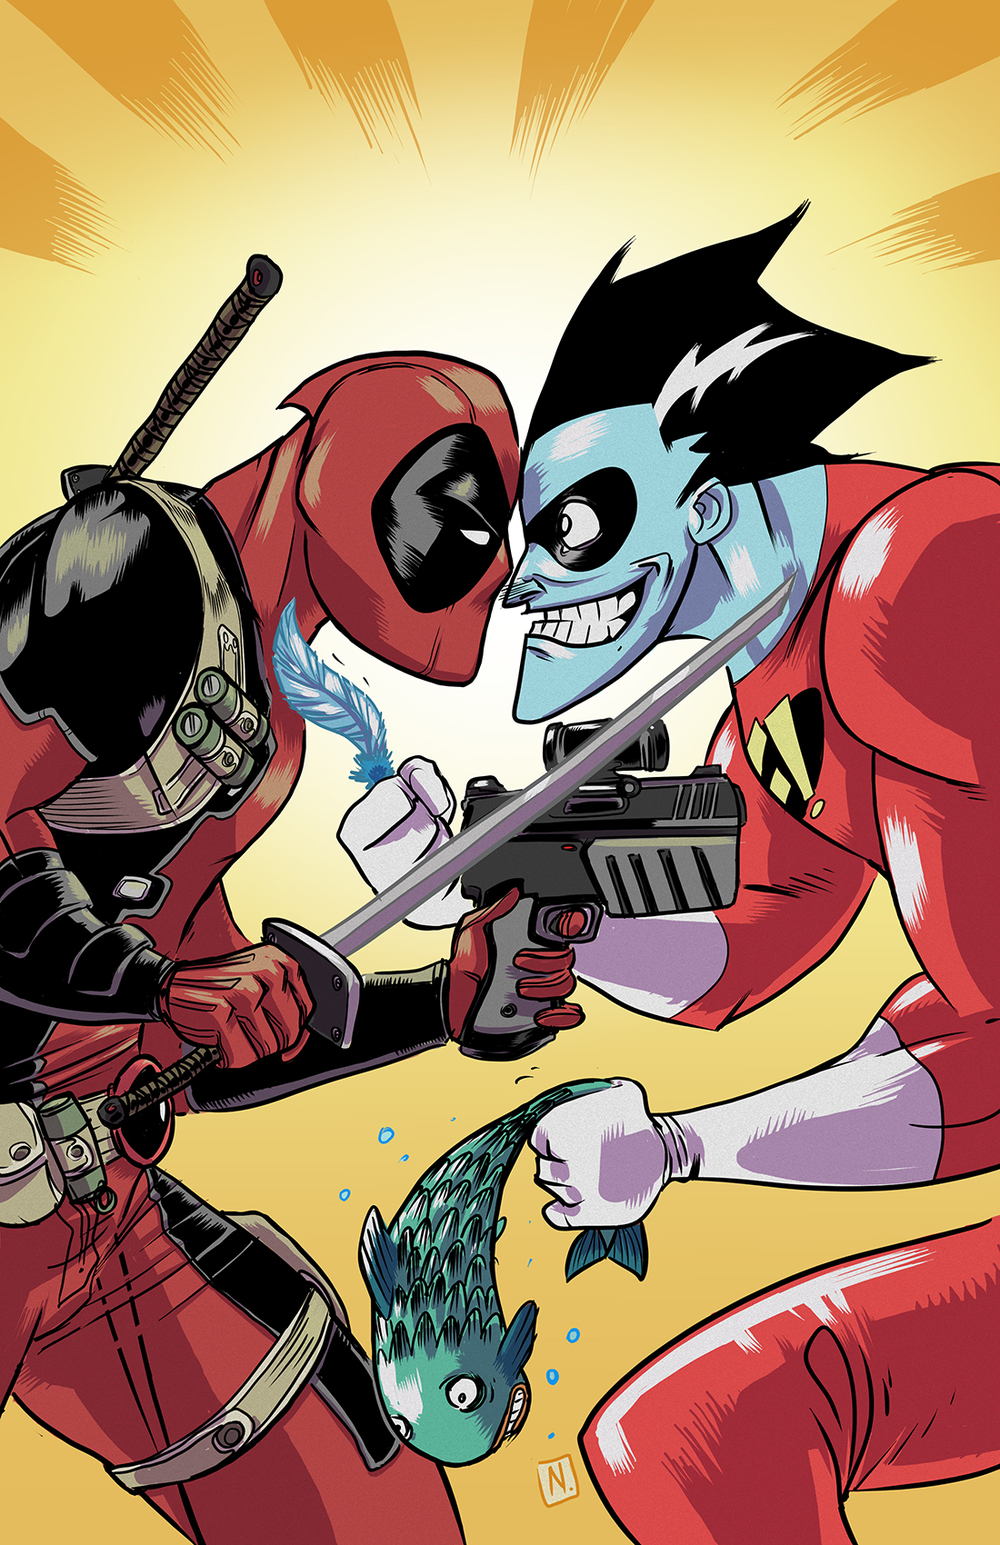 deadpool-vs-freakazoid-fan-art.jpg